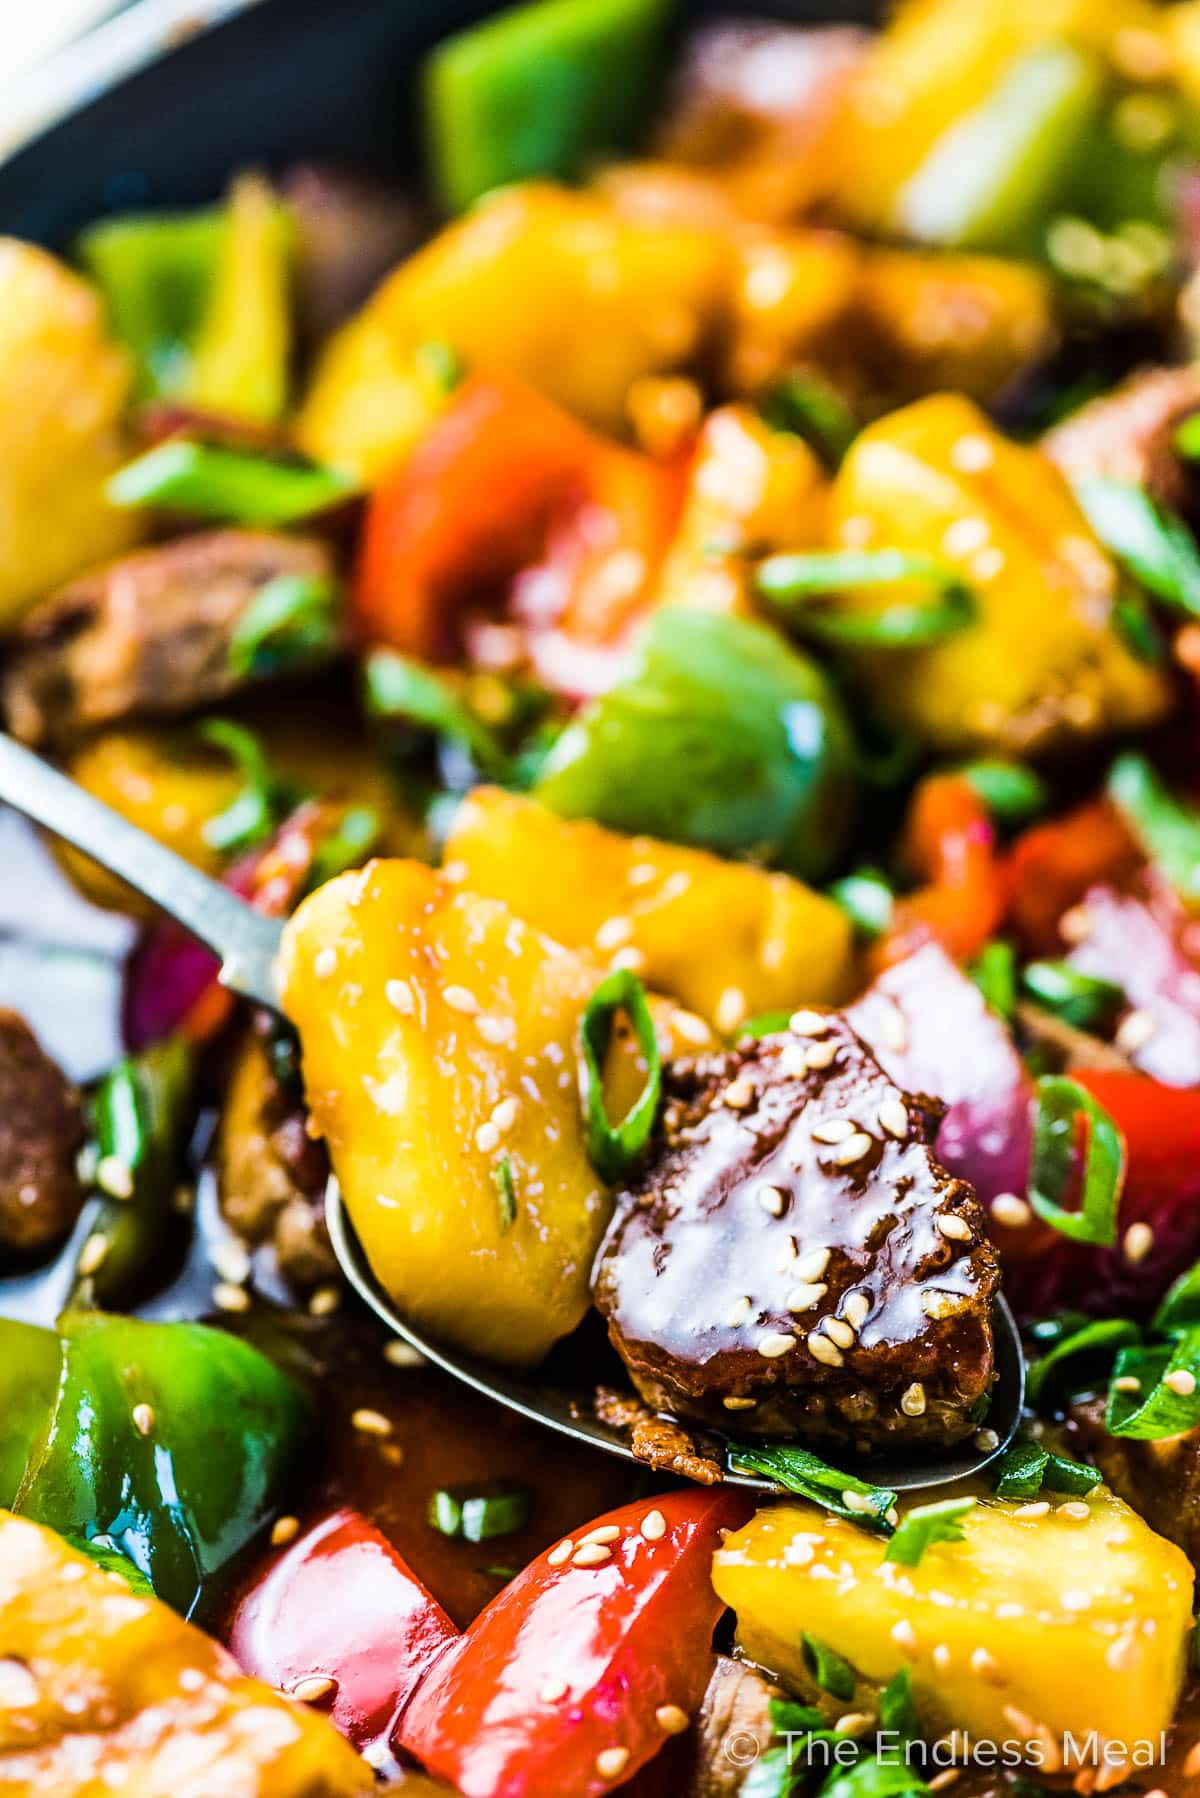 A close up of a spoon scooping some of this pork stir fry recipe.